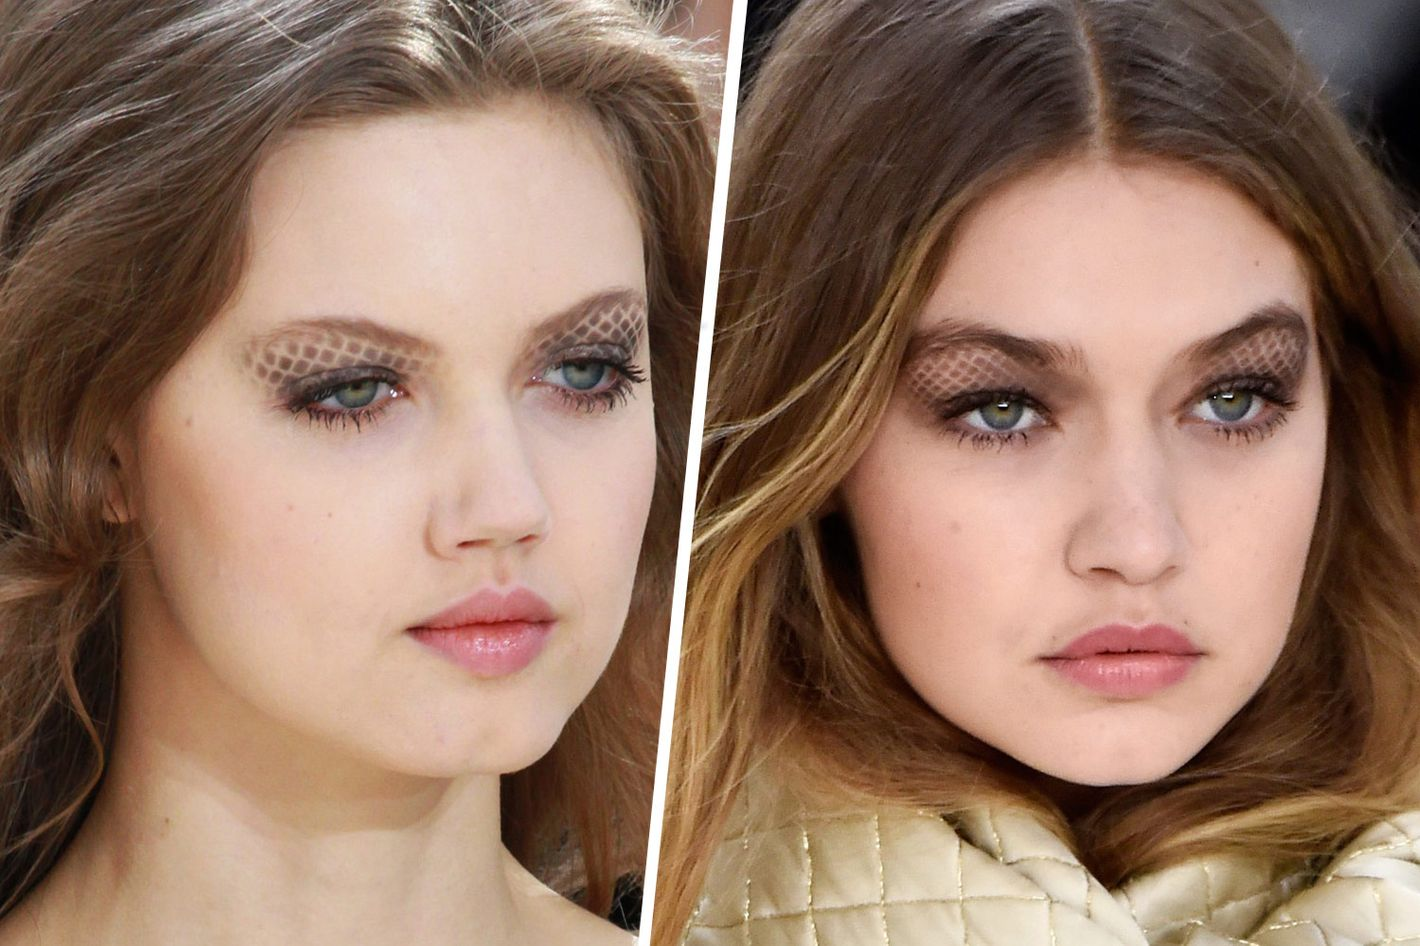 Are You Ready for Your Eyes to Look Like Chanel Bags?